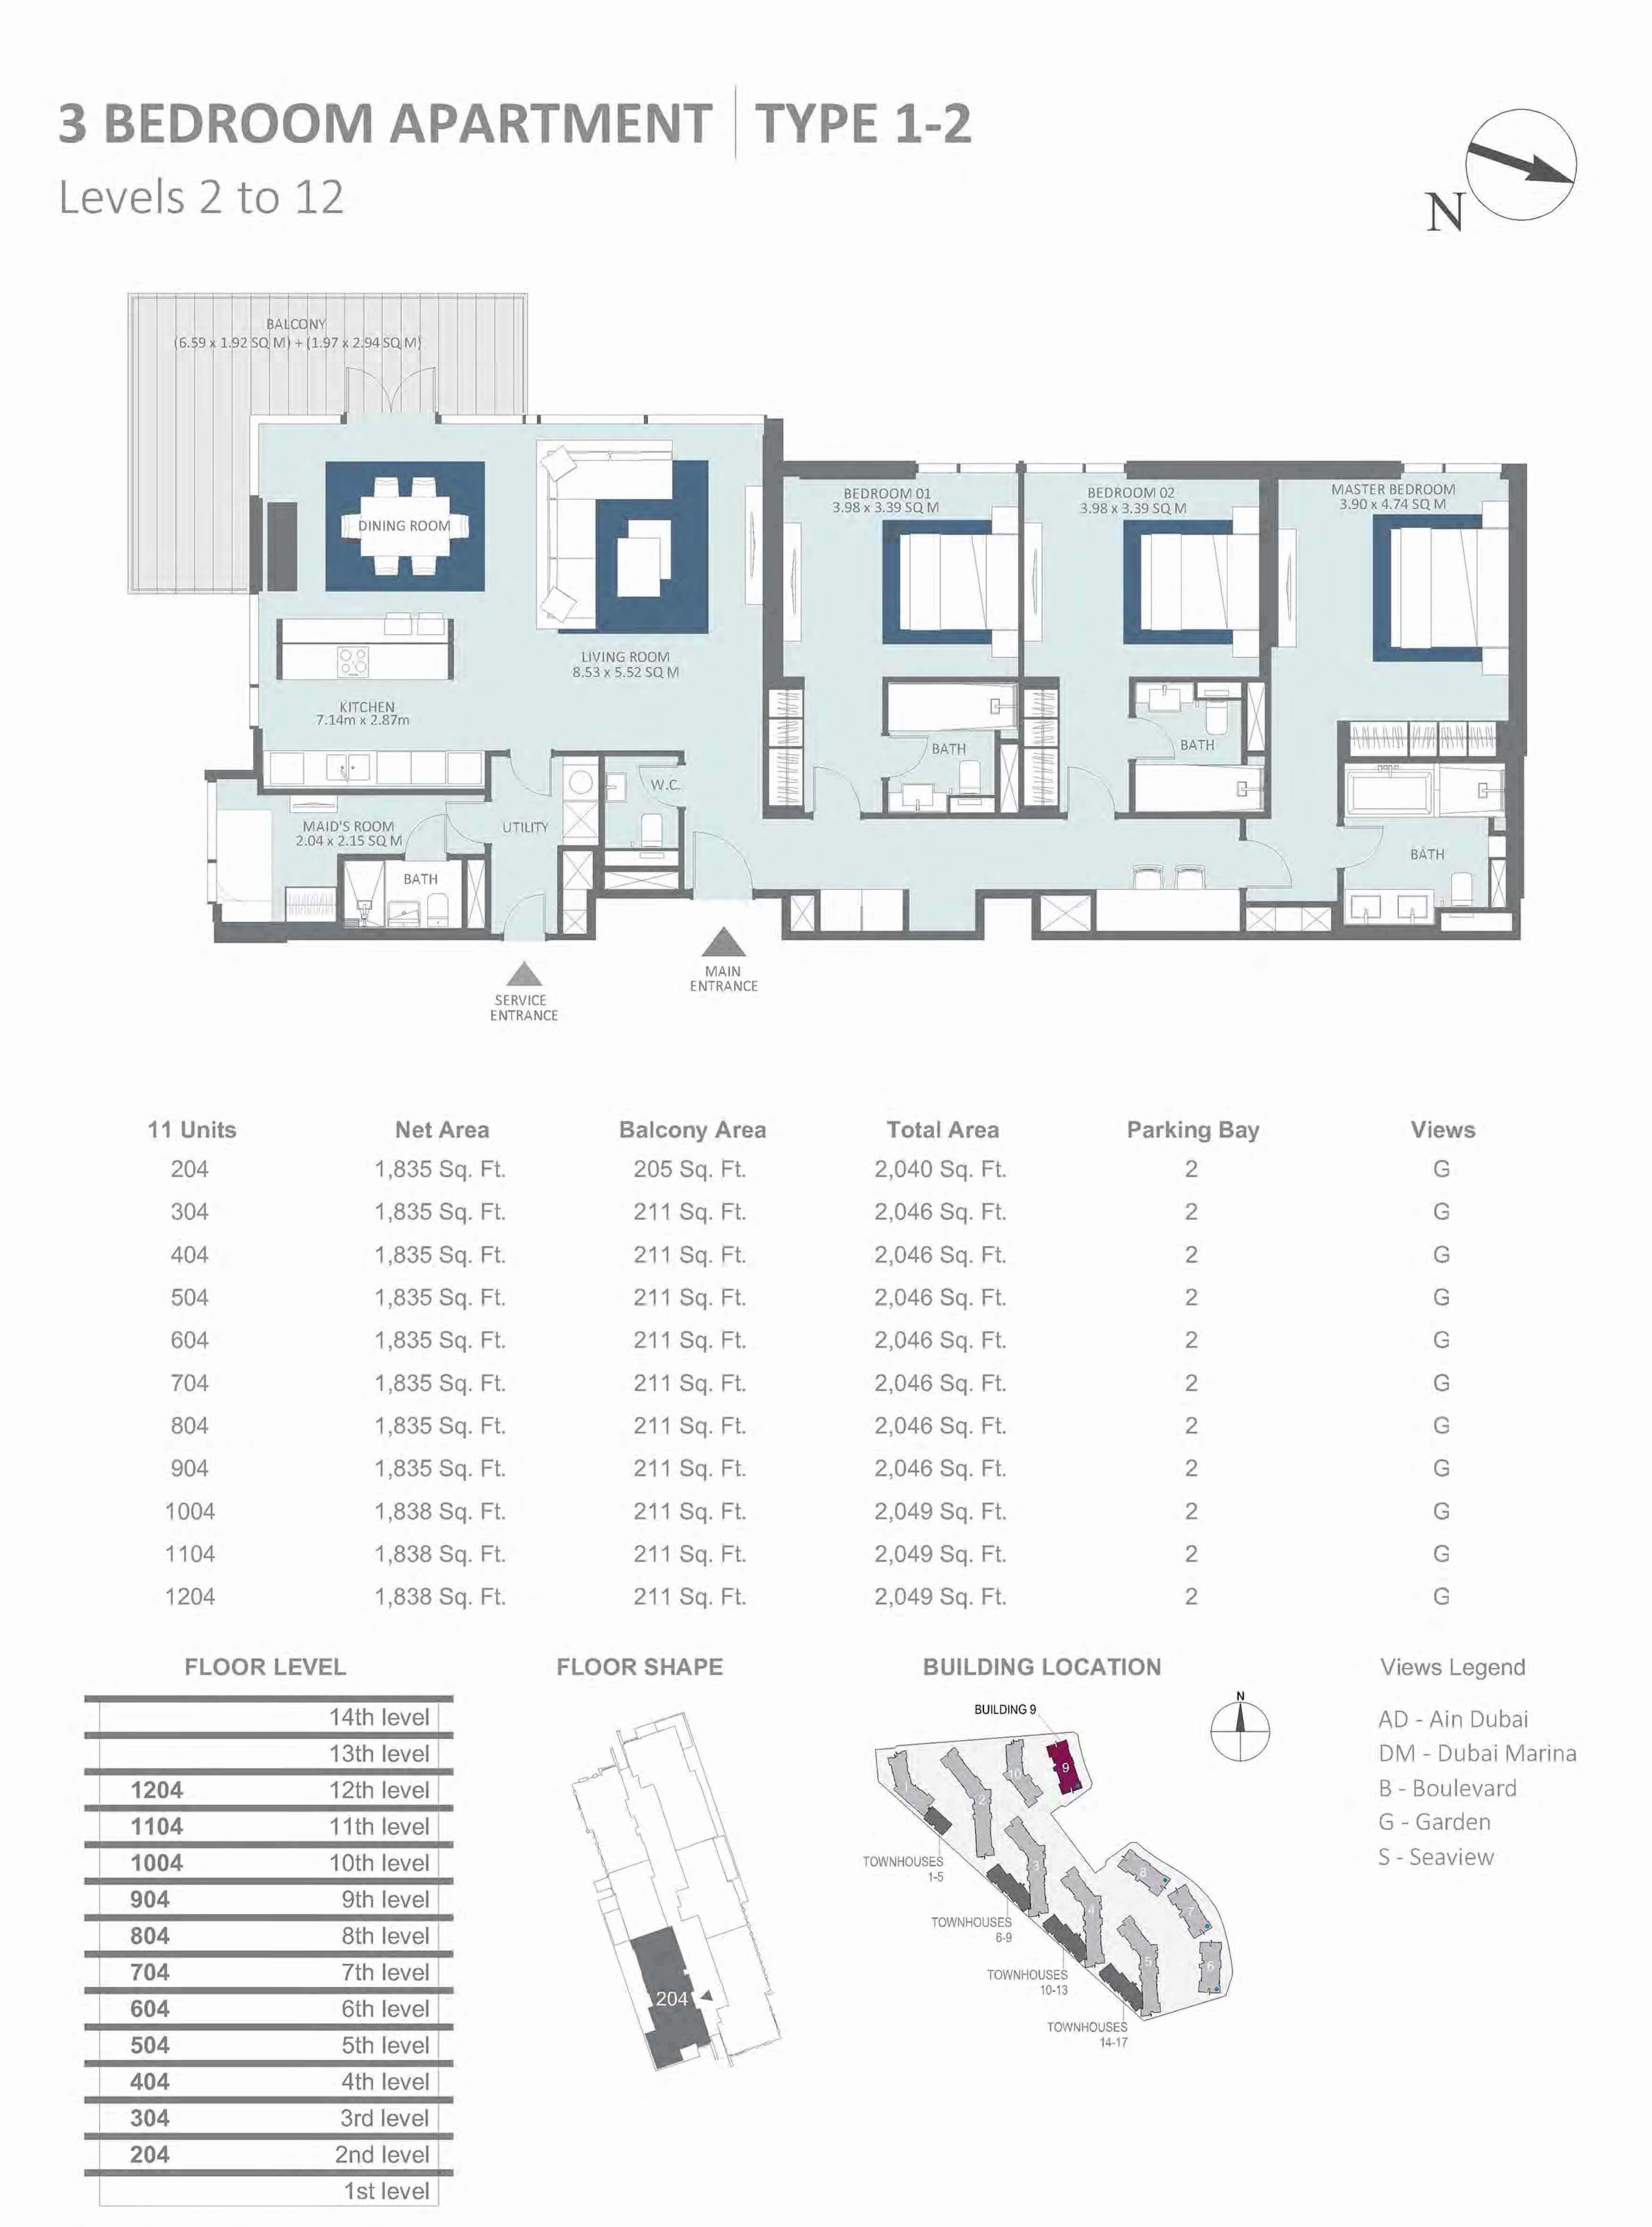 Building 9 - 3 Bedroom Type 1-2, Level 2-to-12 Size 2040 to 2049 sq.ft